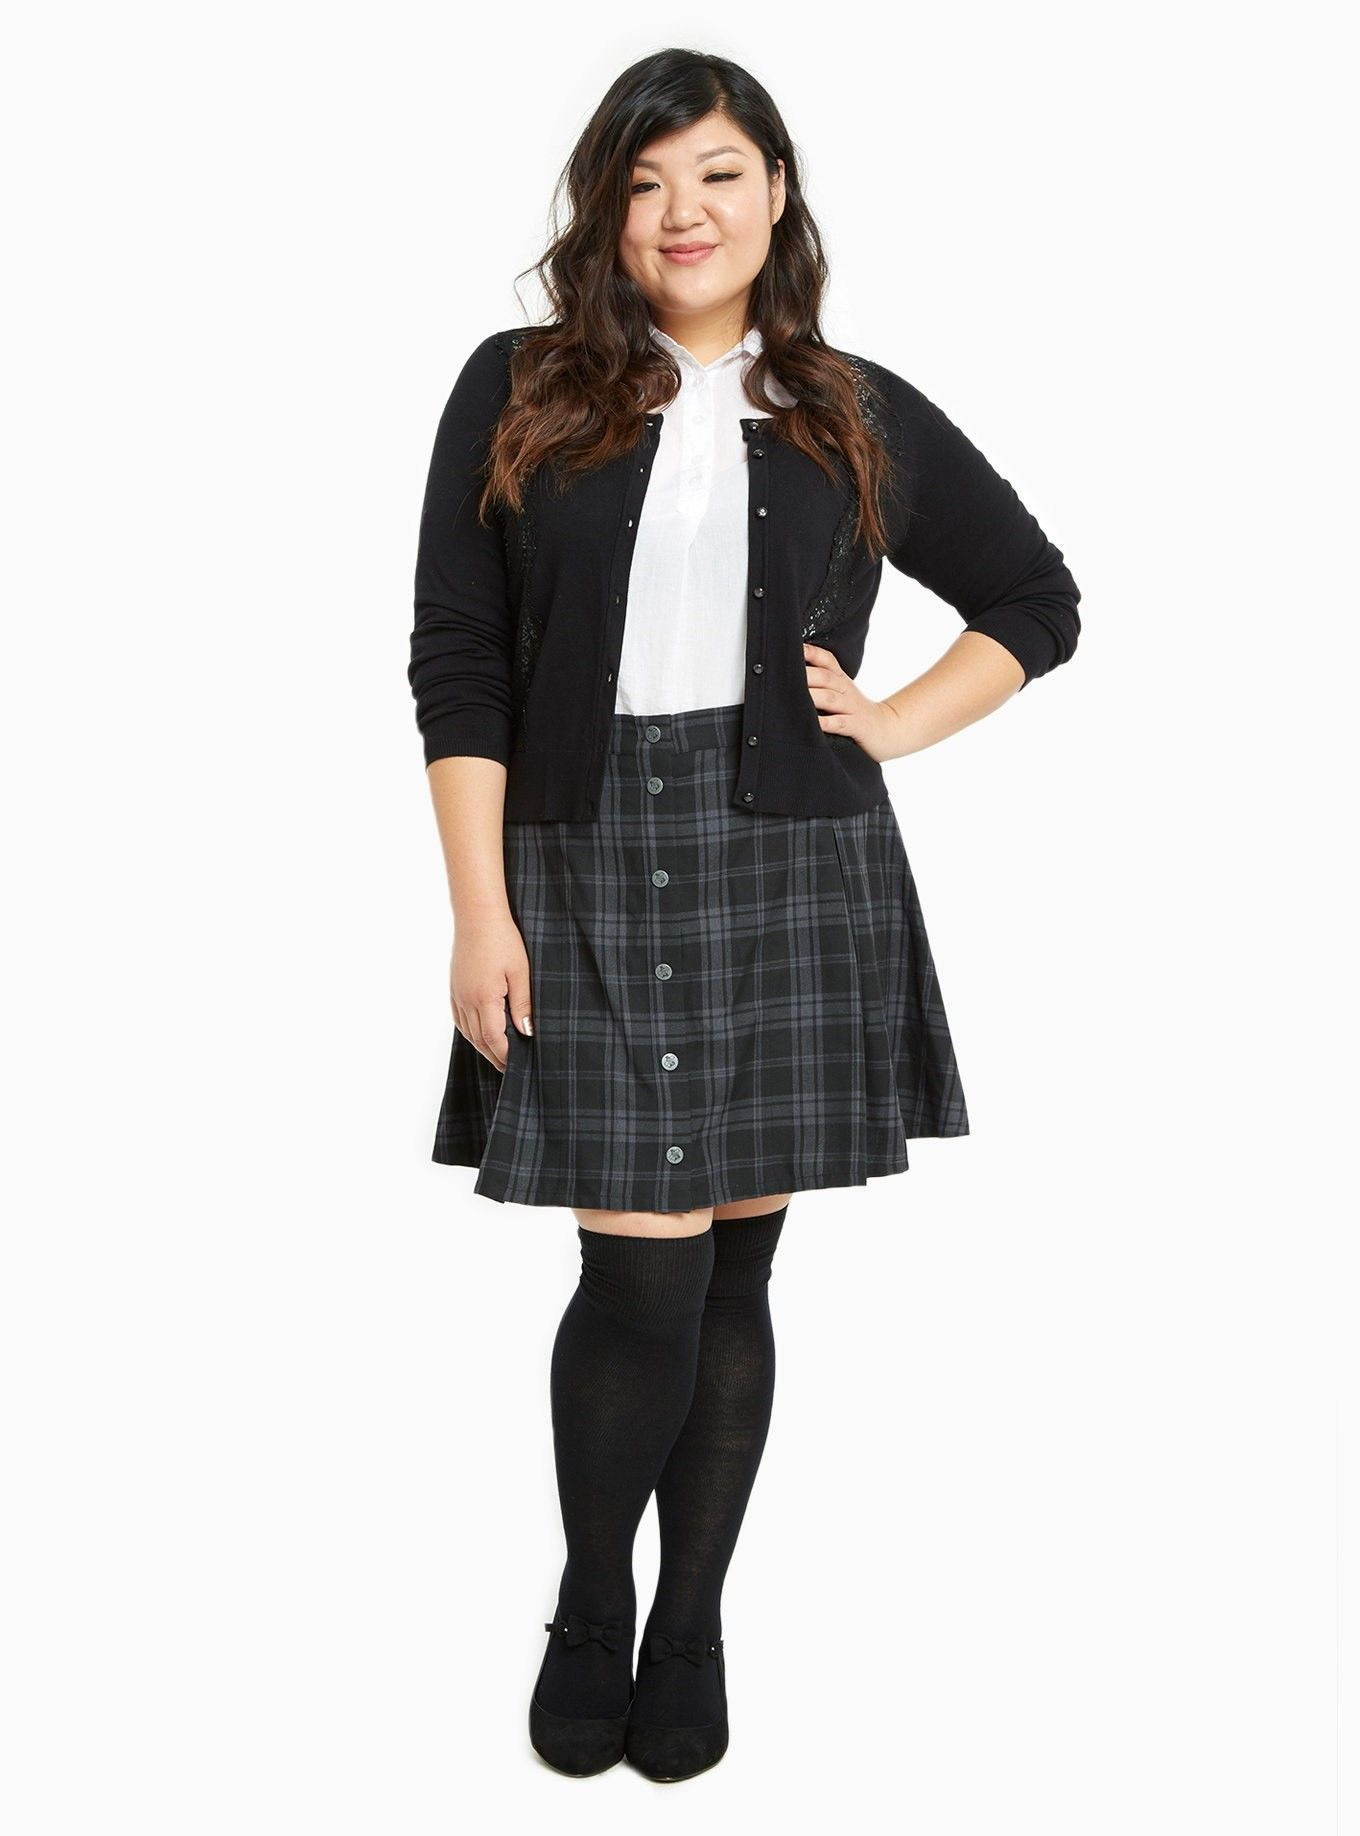 a4ed7583b9 Harry Potter Hogwarts Uniform Mini Skirt - Way sexier than a Hogwarts  uniform in our opinion, this is the perfect addition to any  Hermione-inspired outfits.